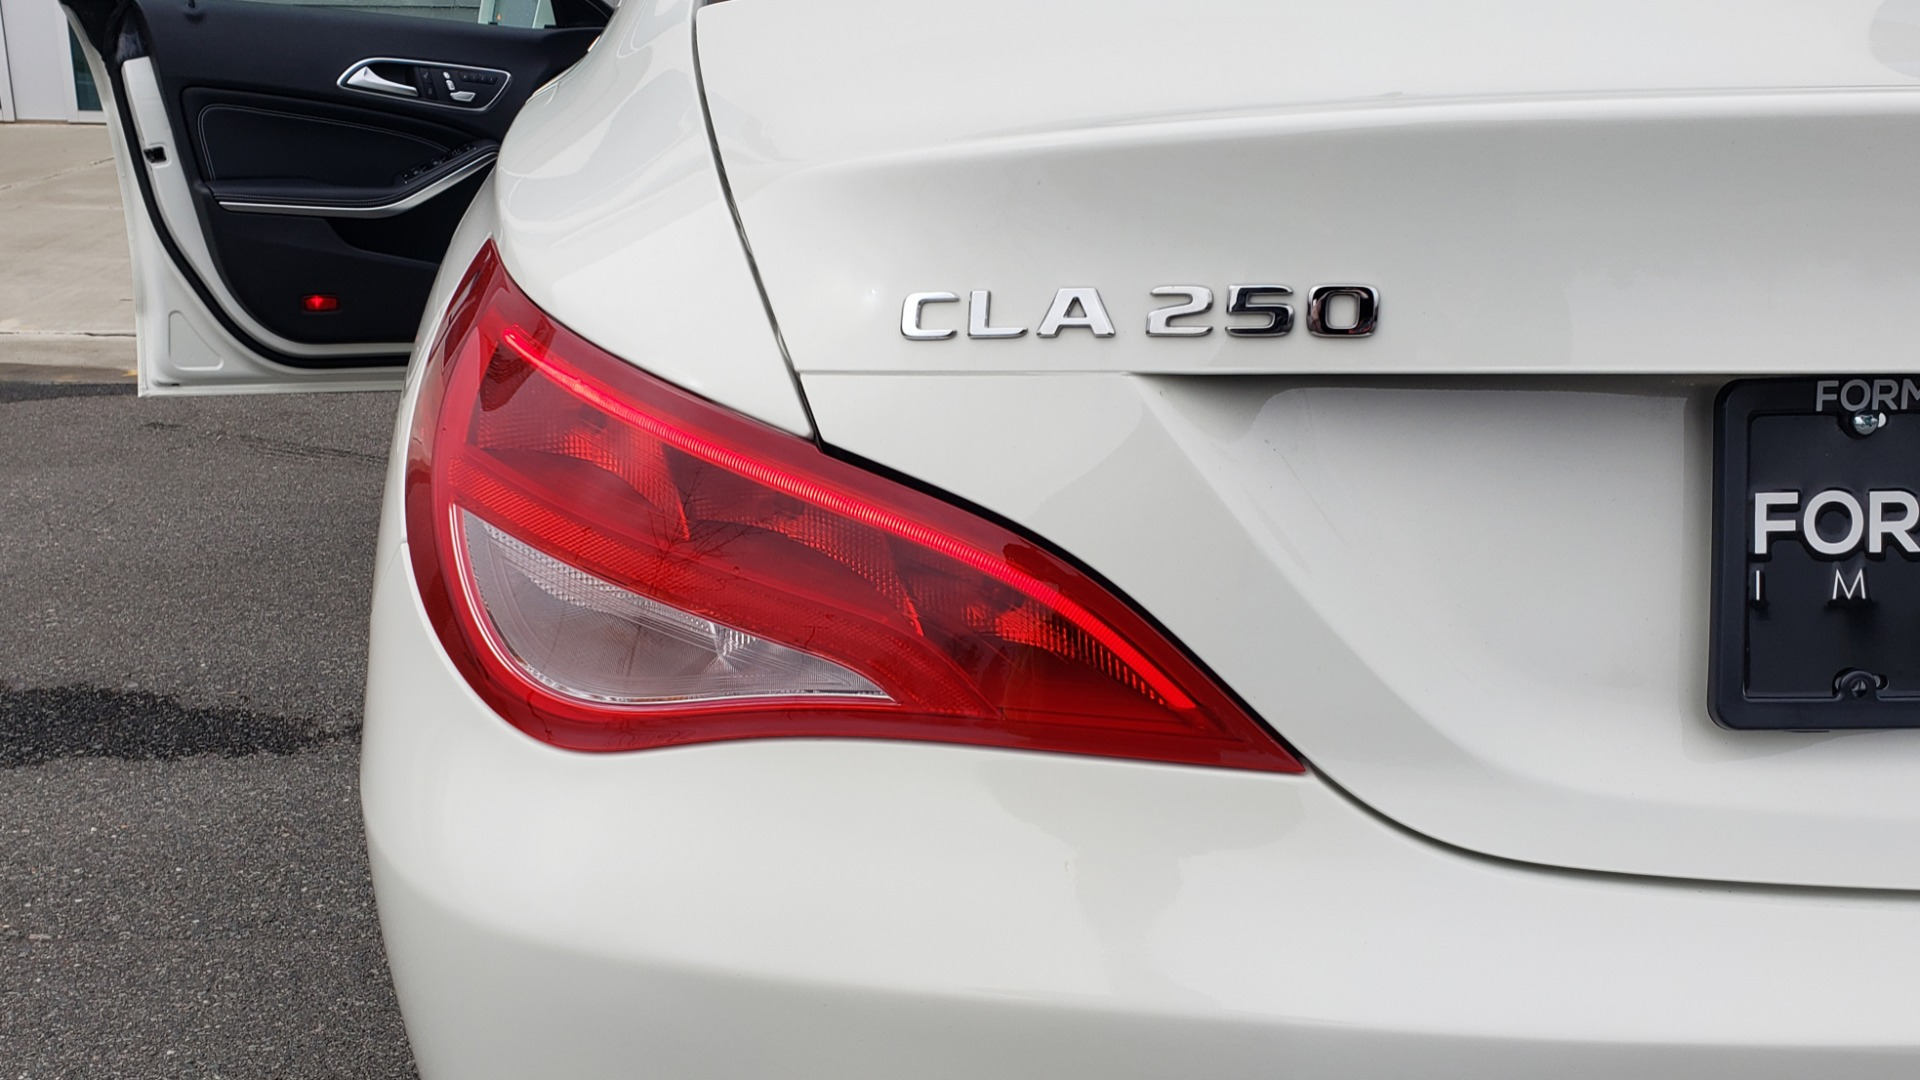 Used 2018 Mercedes-Benz CLA 250 PREMIUM / NAV / PANO-ROOF / APPLE CARPLAY / REARVIEW for sale $23,995 at Formula Imports in Charlotte NC 28227 27